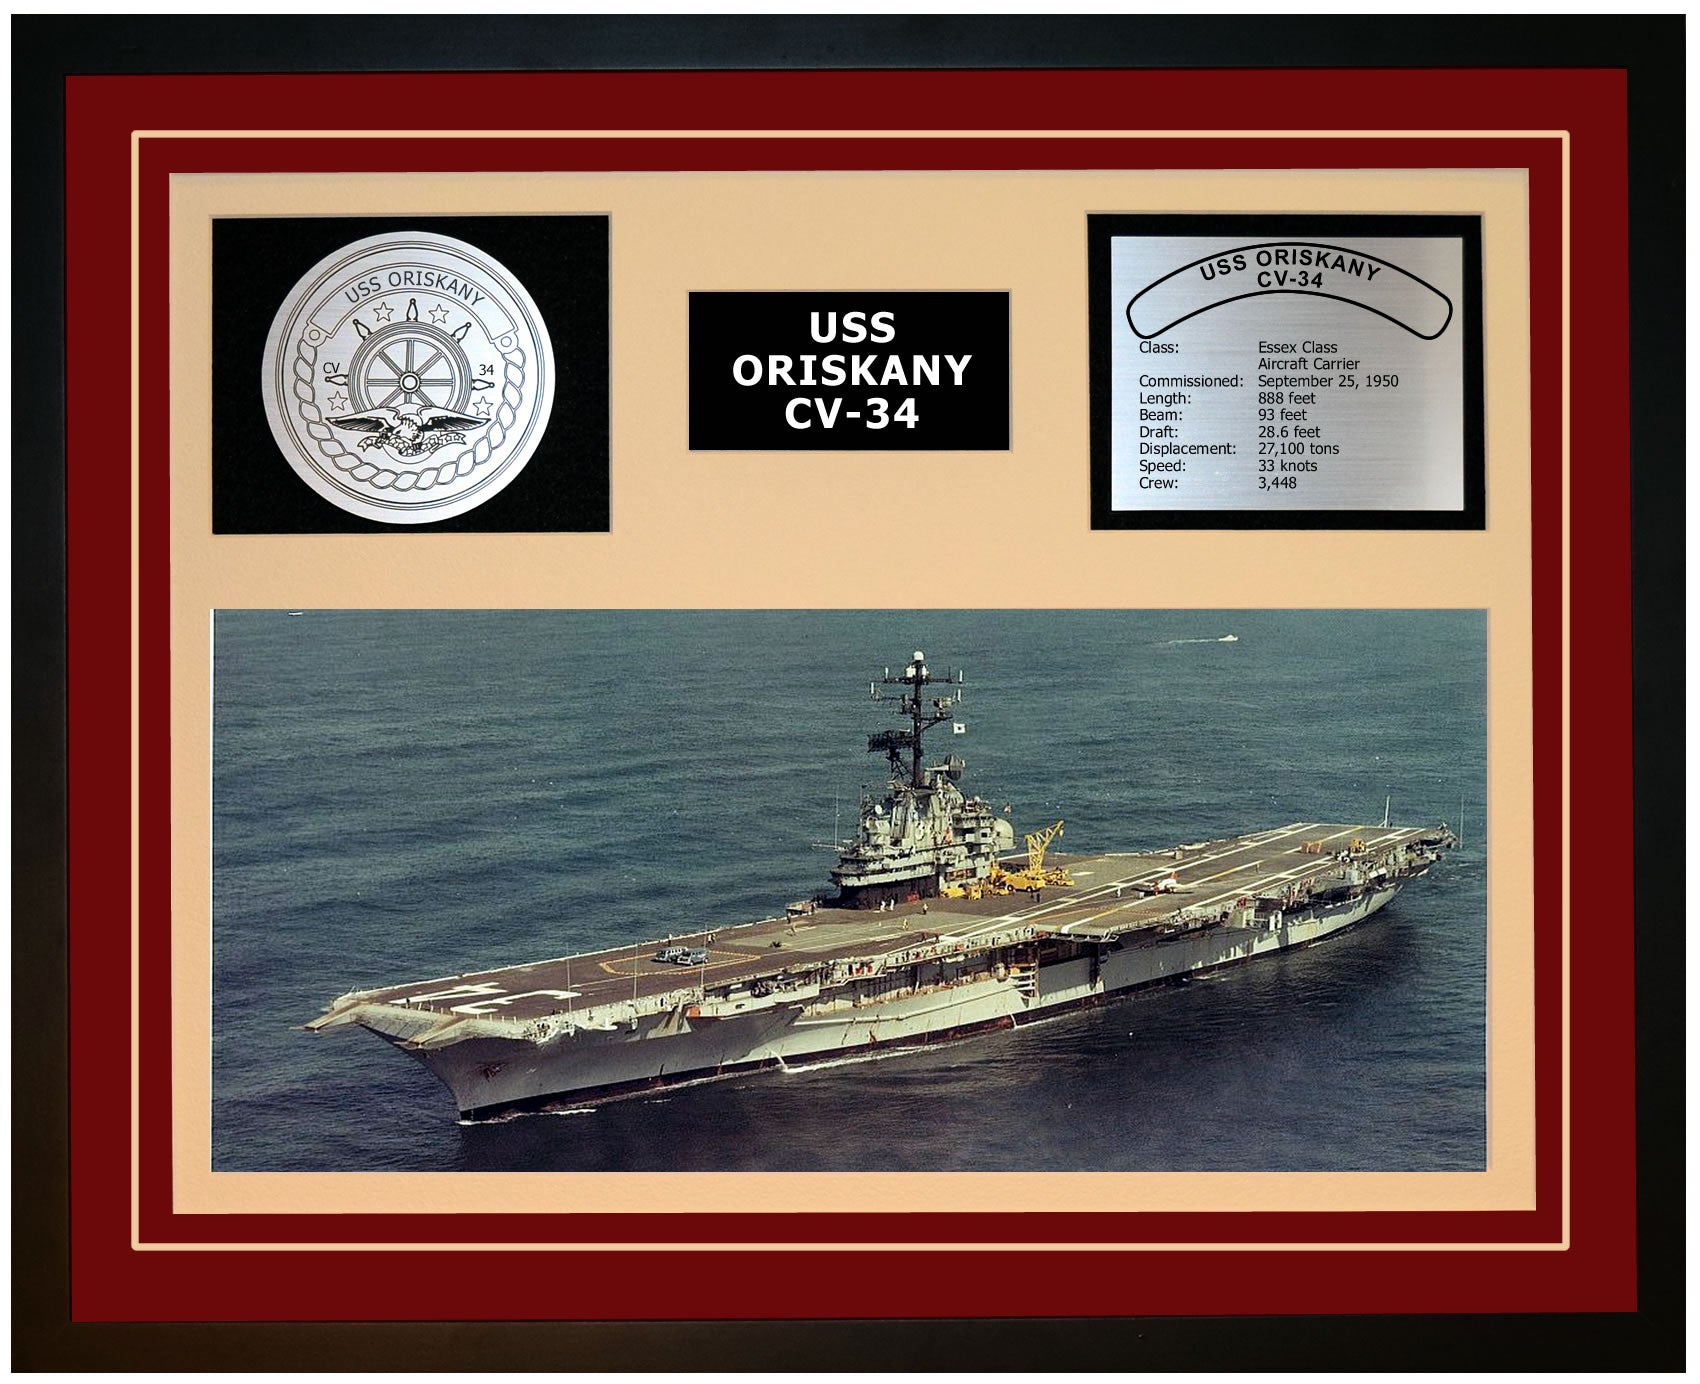 USS ORISKANY CV-34 Framed Navy Ship Display Burgundy